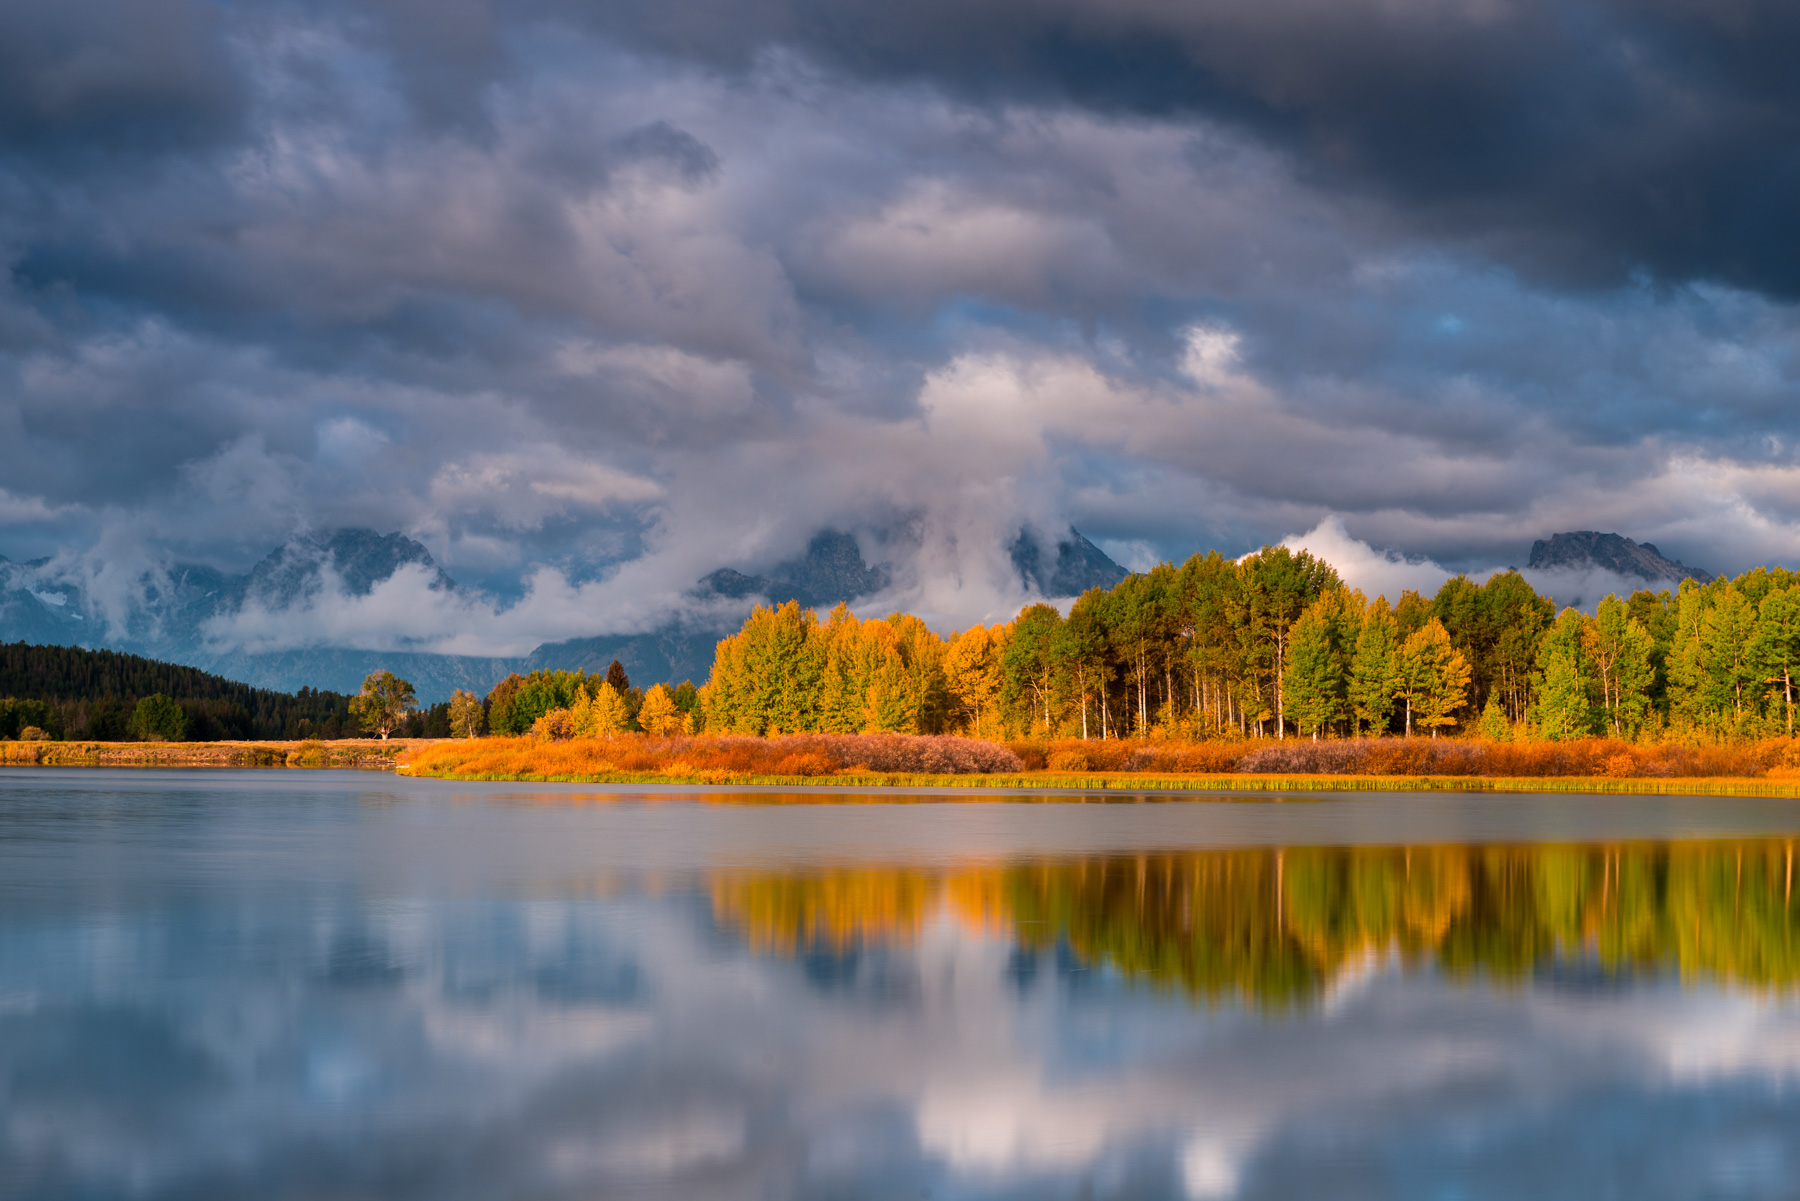 A stormy sunrise reflected in the still waters of Ox Bow Bend, Grand Teton National Park, Montana. Available Print Sizes: 12x18...